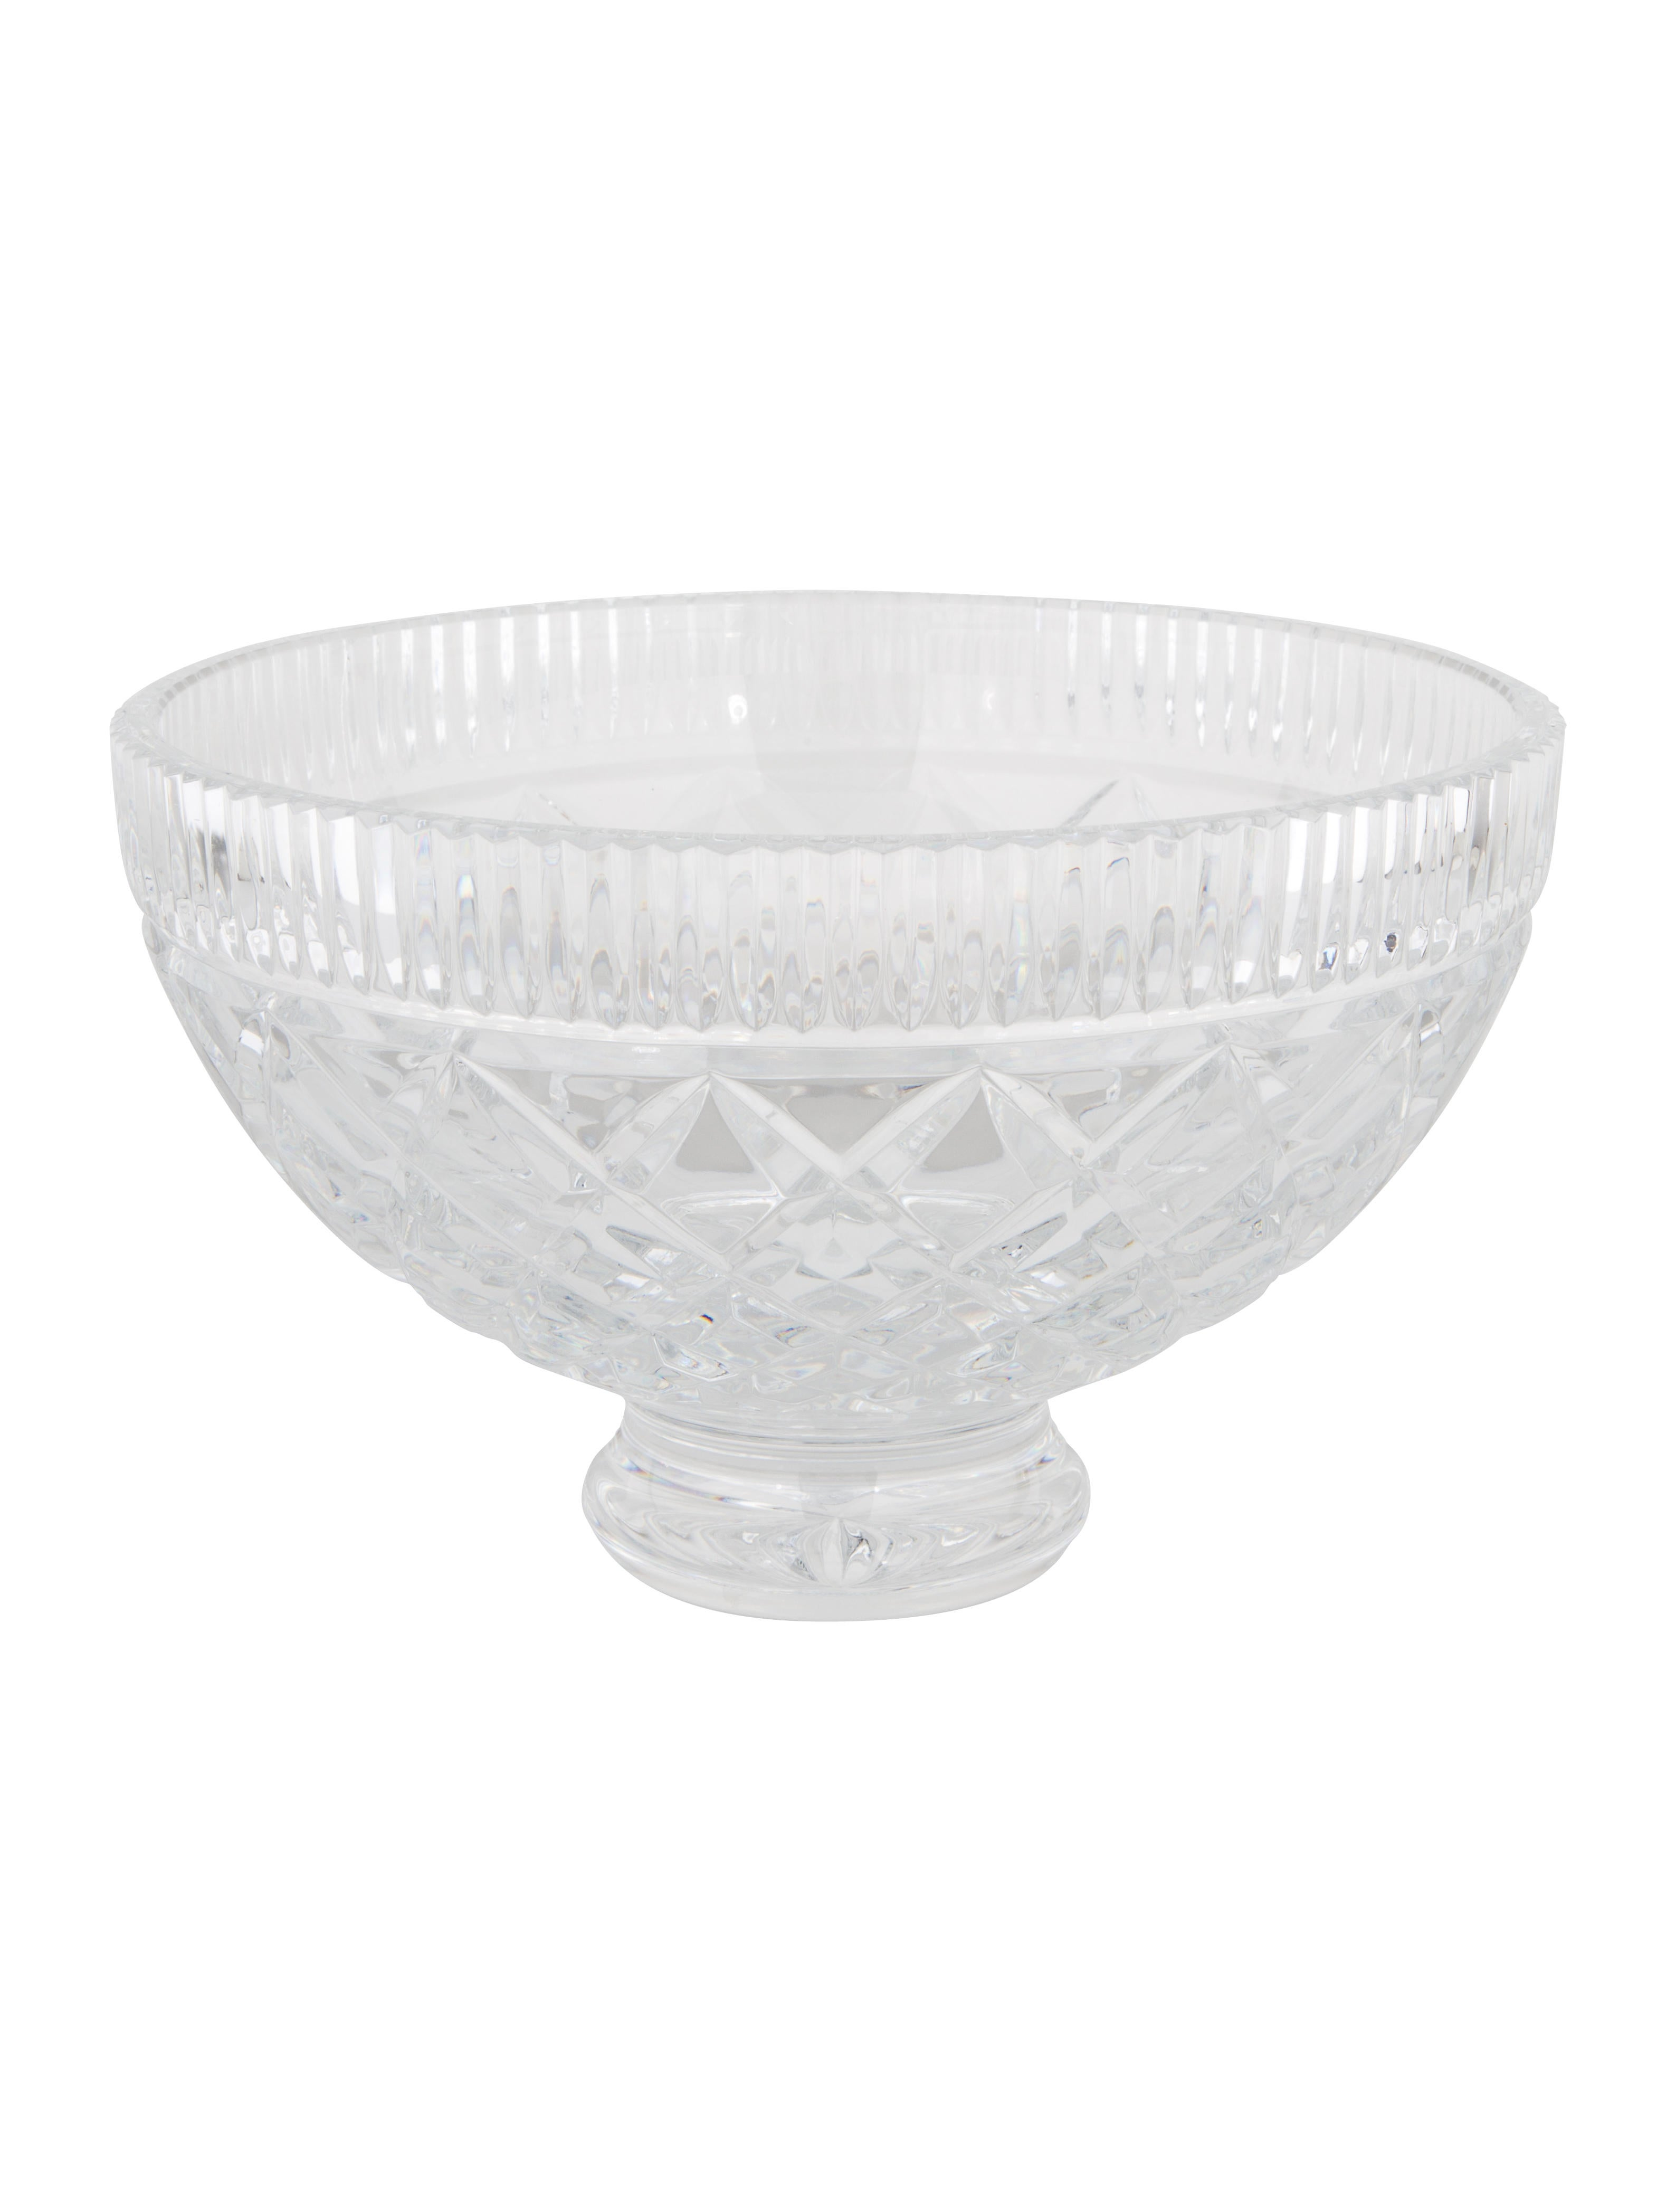 Waterford crystal footed centerpiece bowl tabletop and kitchen w5w22758 the realreal - Footed bowl centerpiece ...